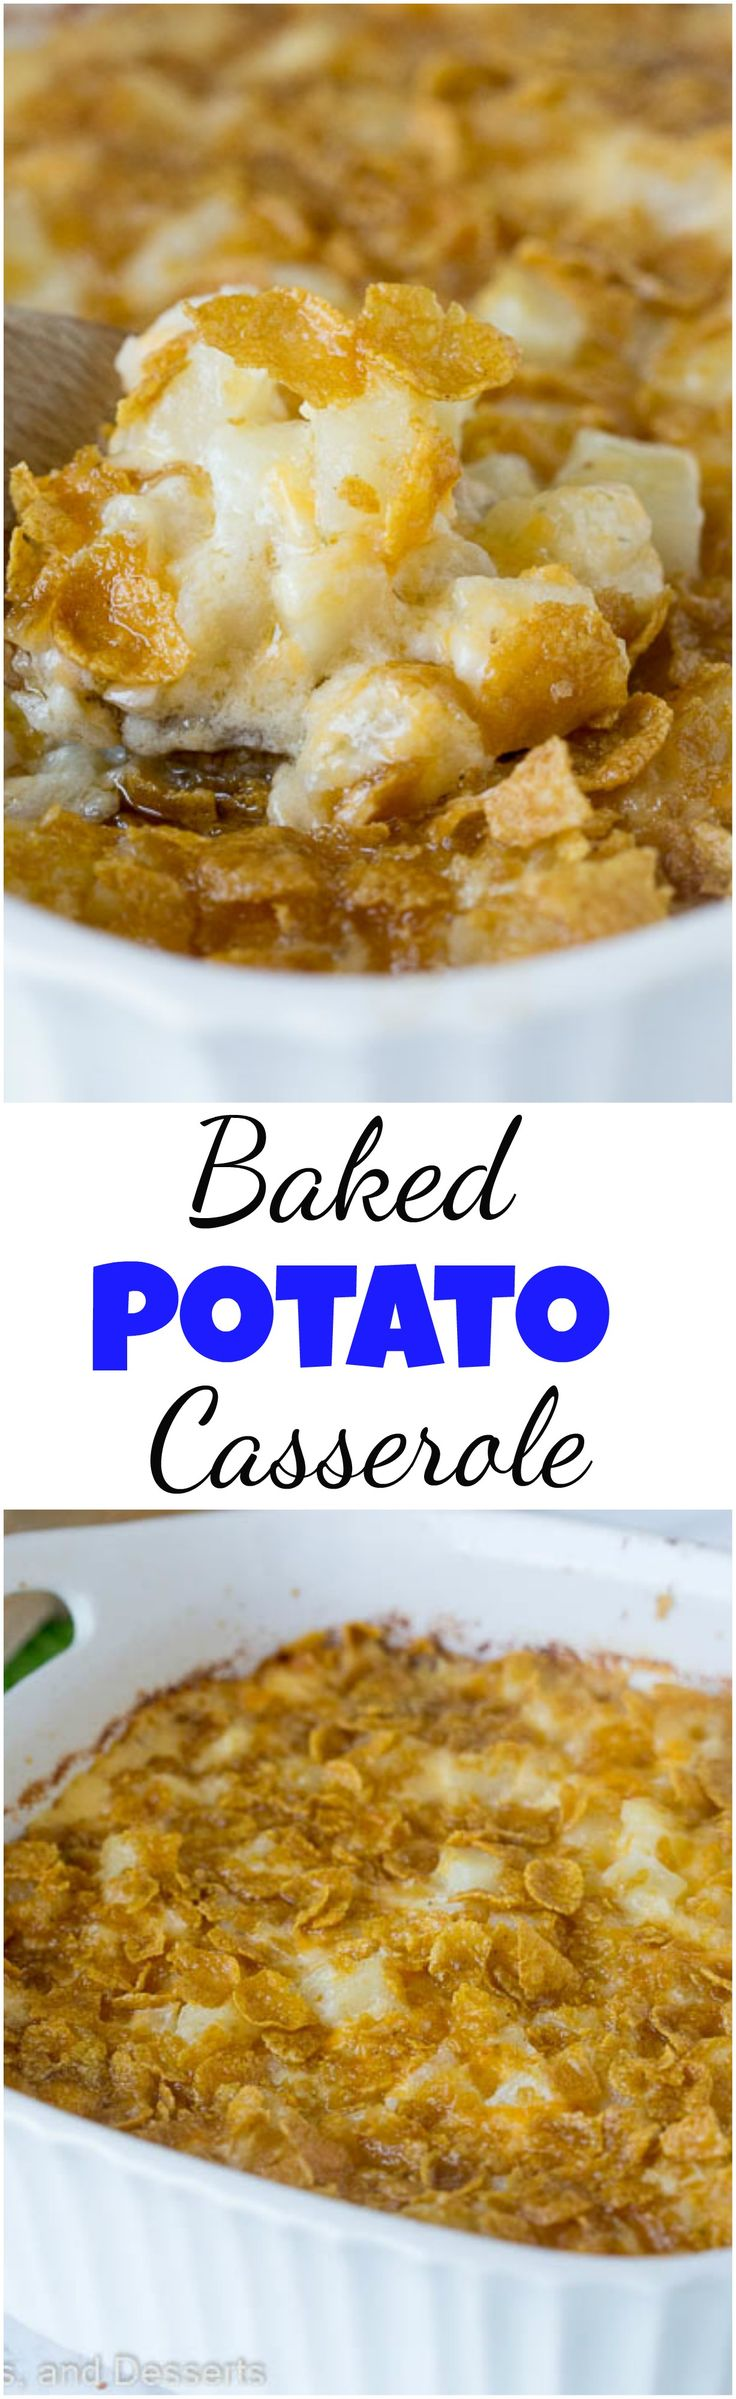 Baked Potato Casserole – a cheesy potato casserole that is great for entertaining, potlucks, or even busy weeknights. Comforting, delicious, and a family favorite. #holidaysides #potatocasserole #sides #cheesypotatoes #sidedish #recipe #potatoes